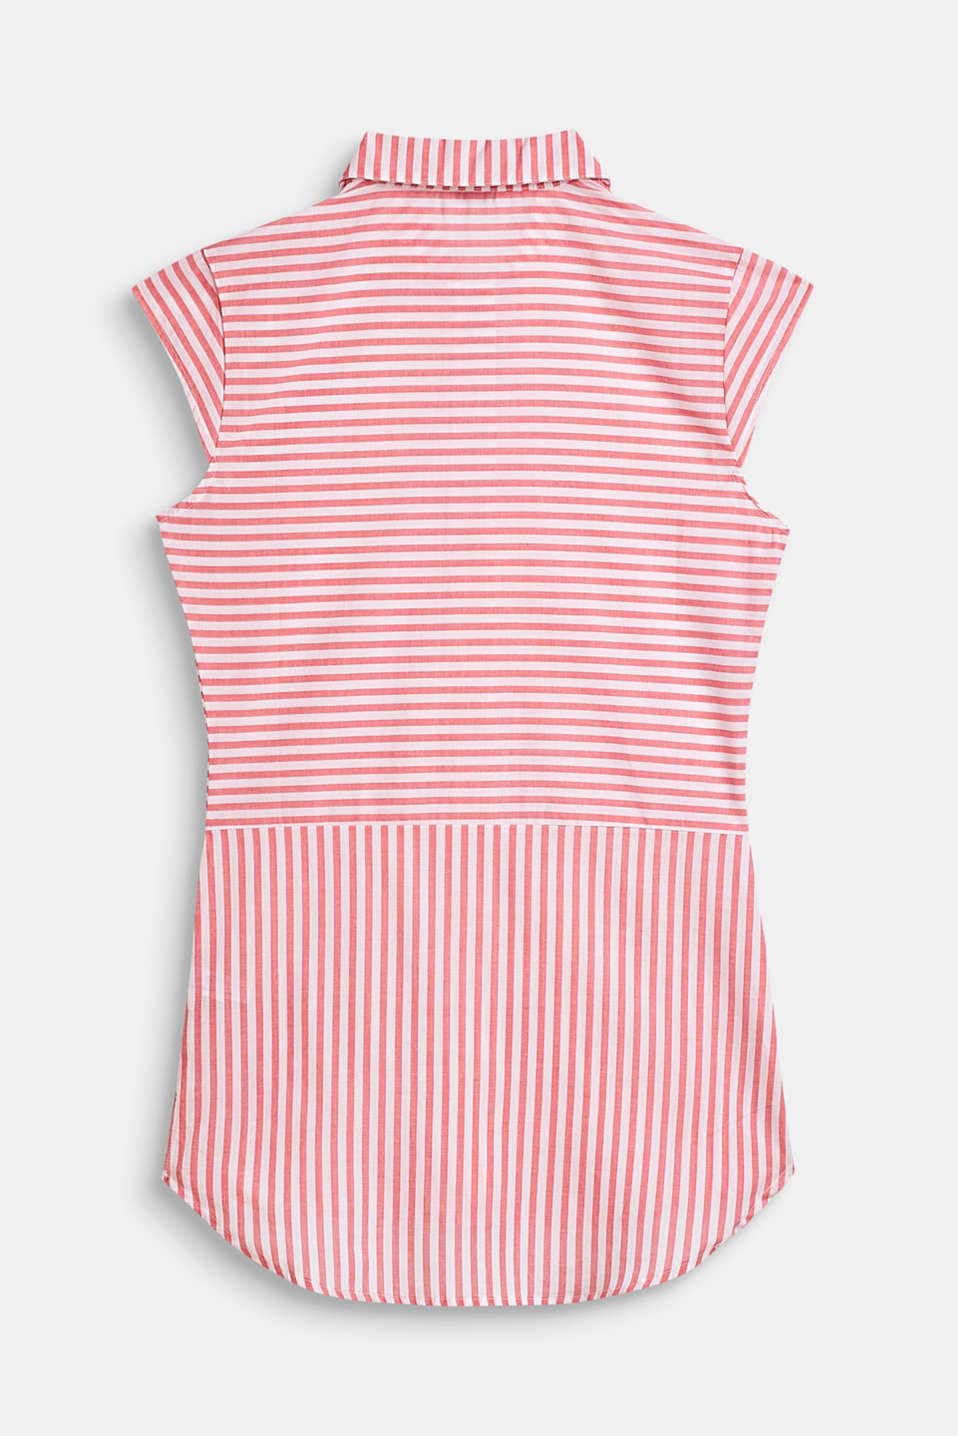 Striped, woven nightshirt made of 100% cotton, CORAL, detail image number 1